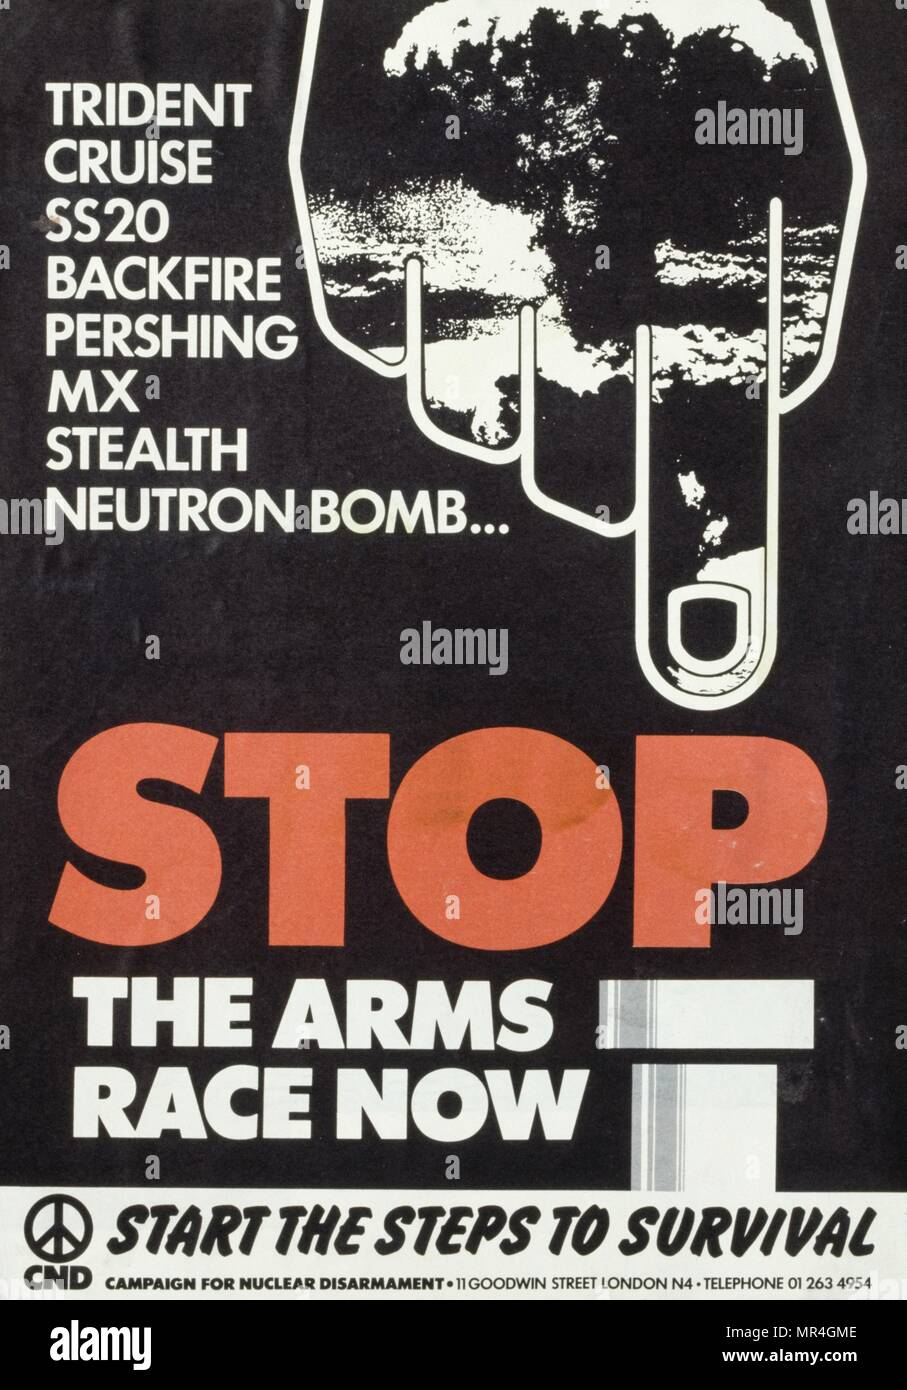 British CND (campaign for nuclear disarmament) anti-nuclear weapons peace poster 1981, produced during the Cold War - Stock Image